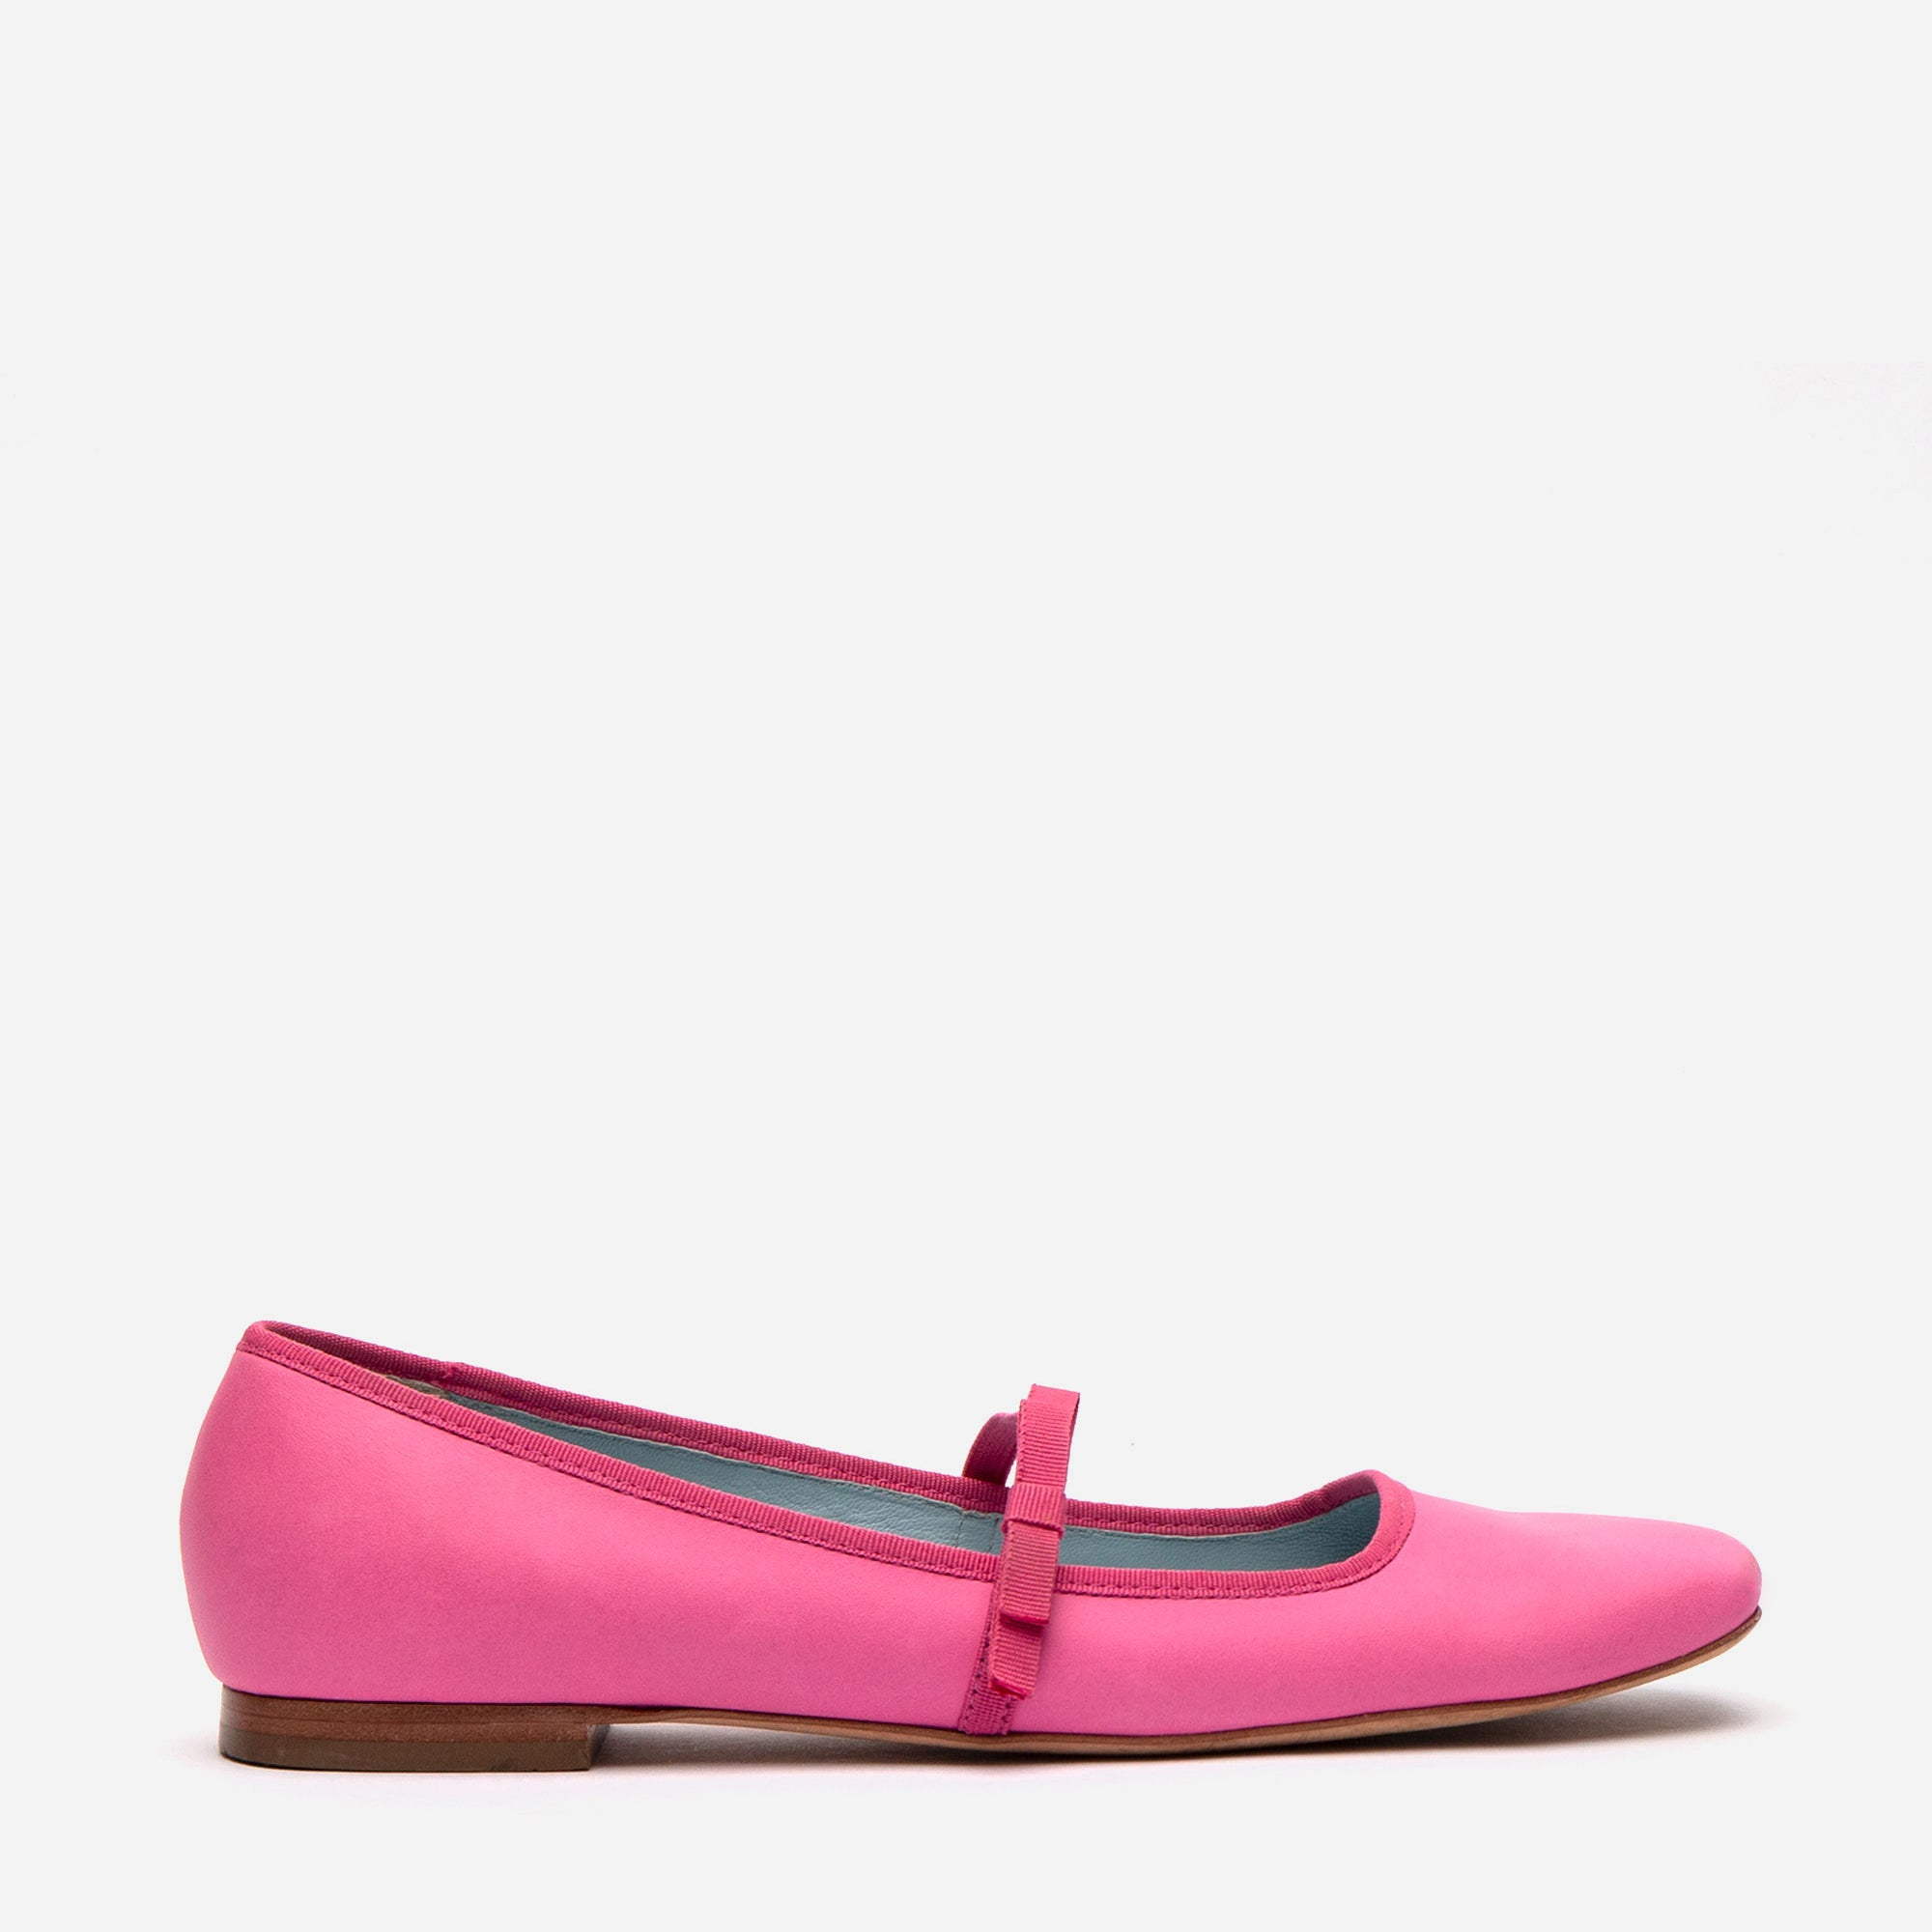 Jude Mary Jane Leather Flat Pink - Frances Valentine